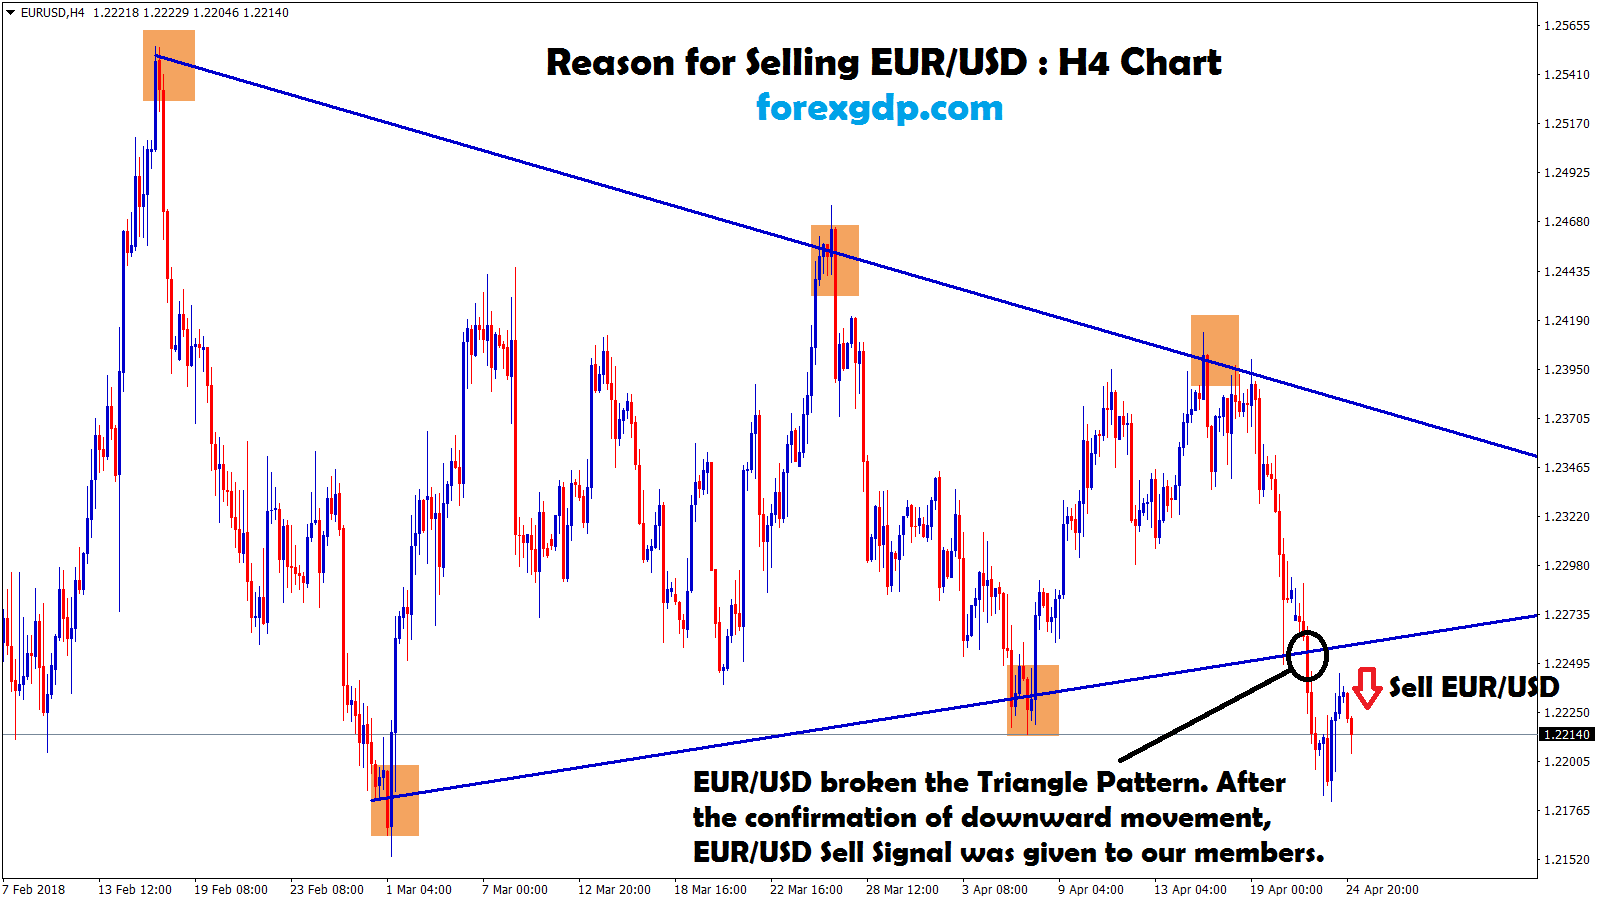 after breakout sell signal given in eur usd